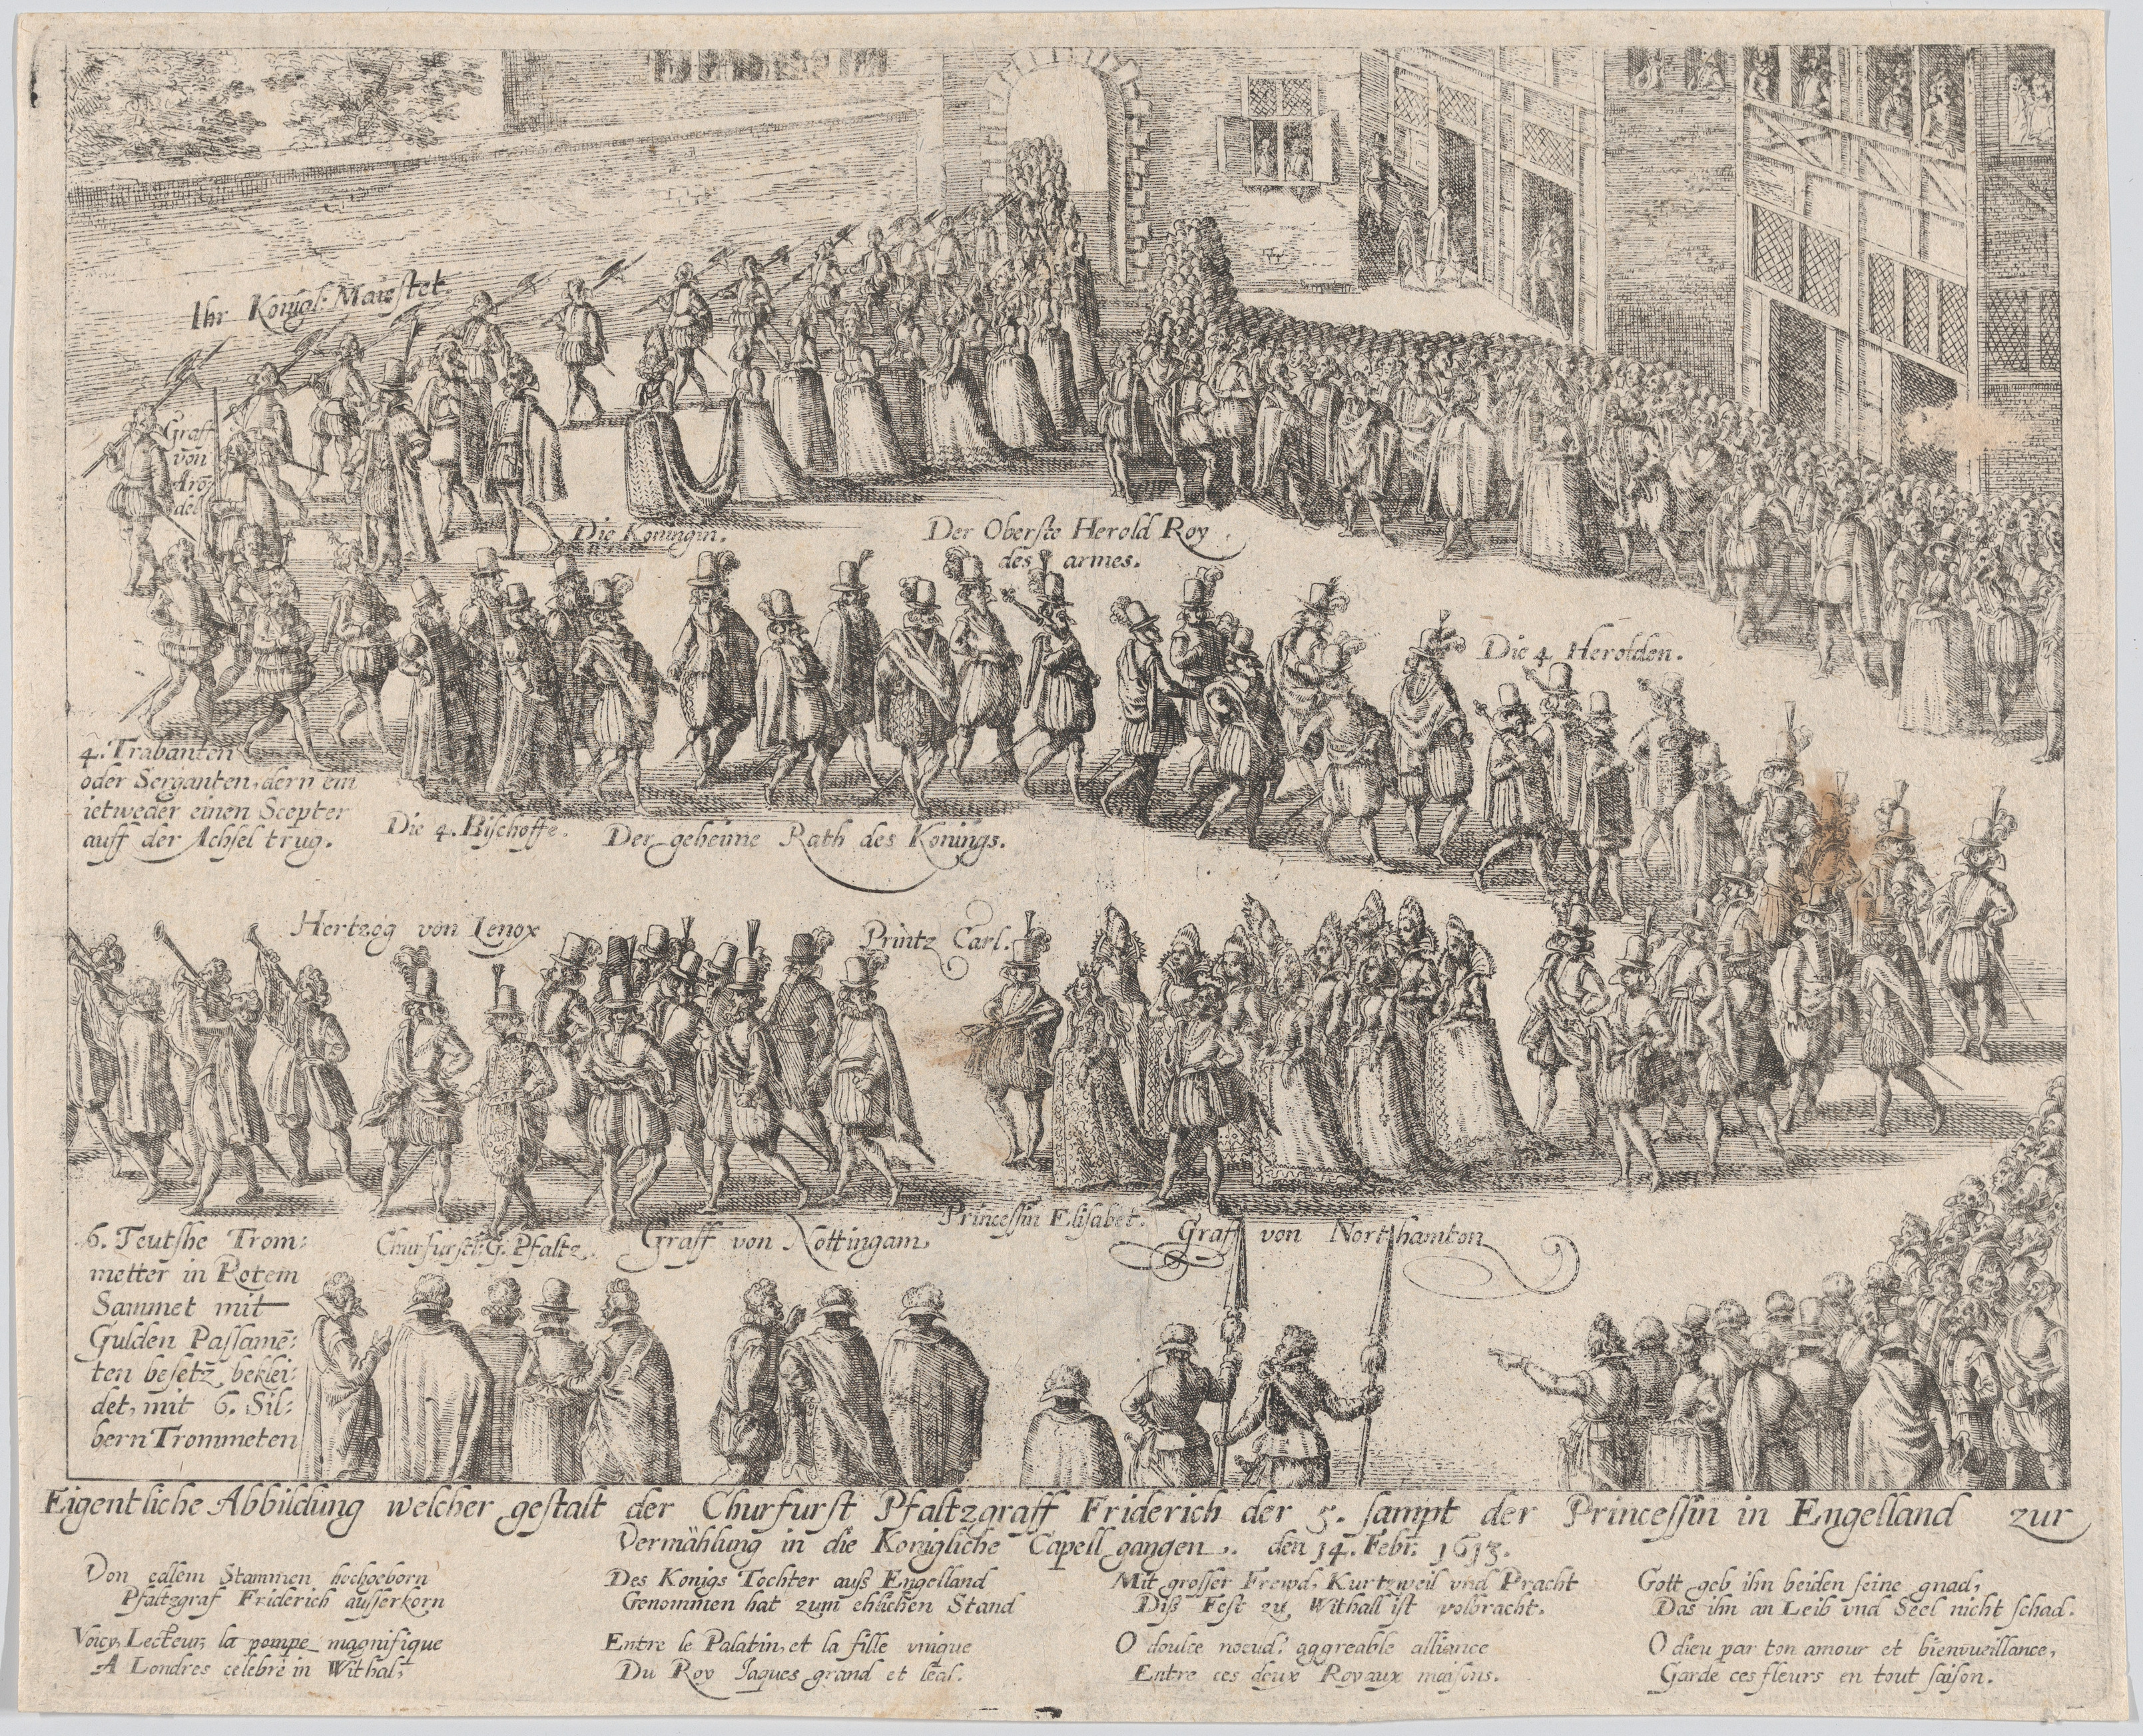 Wedding Procession of Princess Elizabeth and Count Palatine